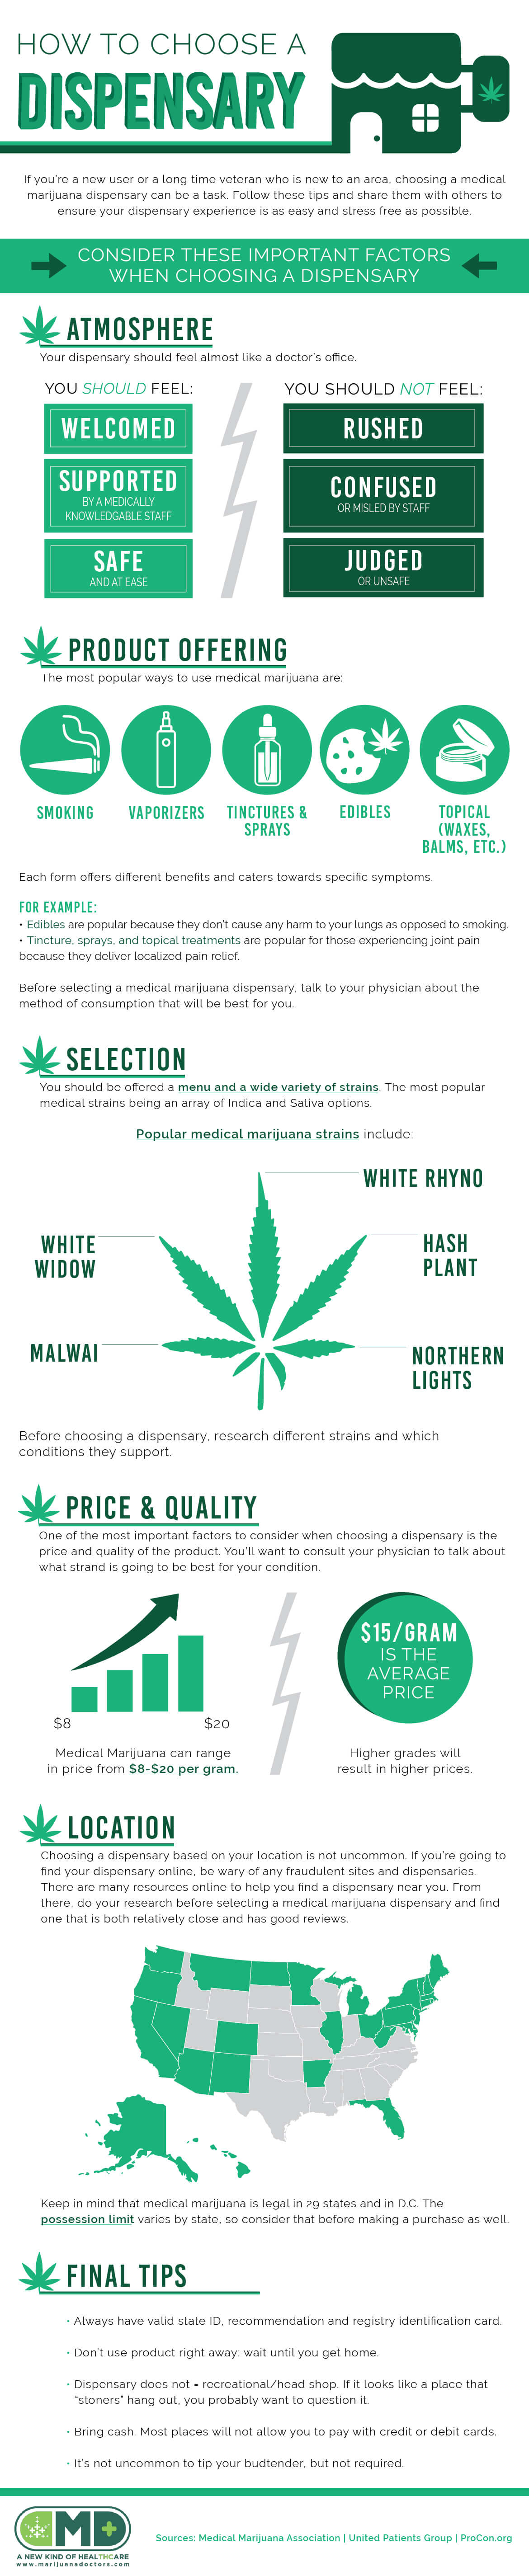 choosing a dispensary